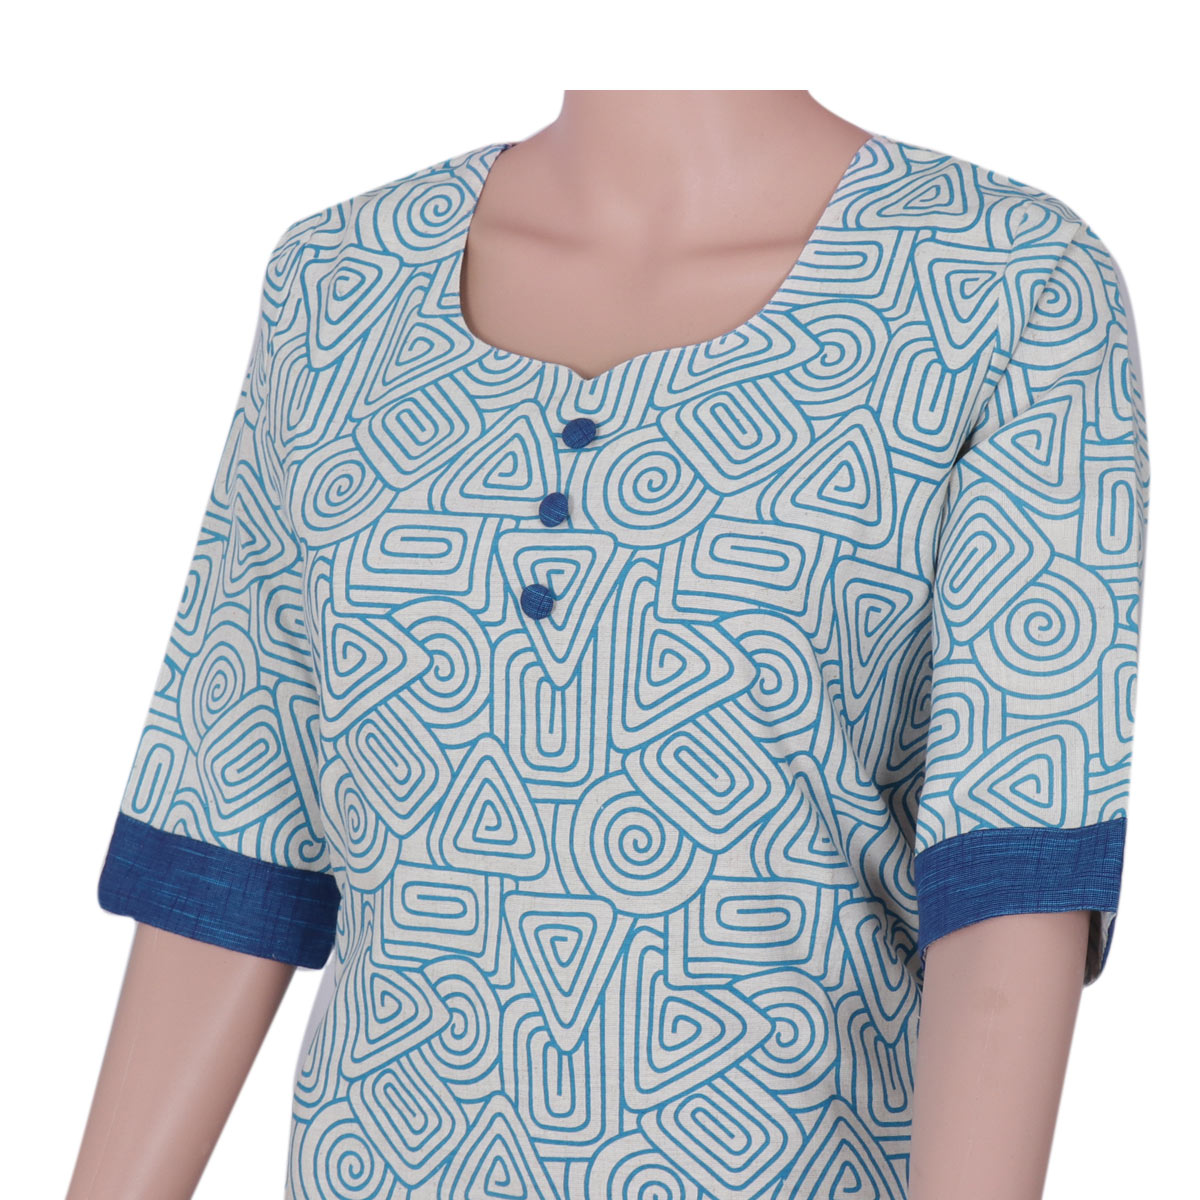 Cotton Kurta Beige and blue with mixed design for Rs.Rs. 680.00 | Kurta by Prashanti Sarees